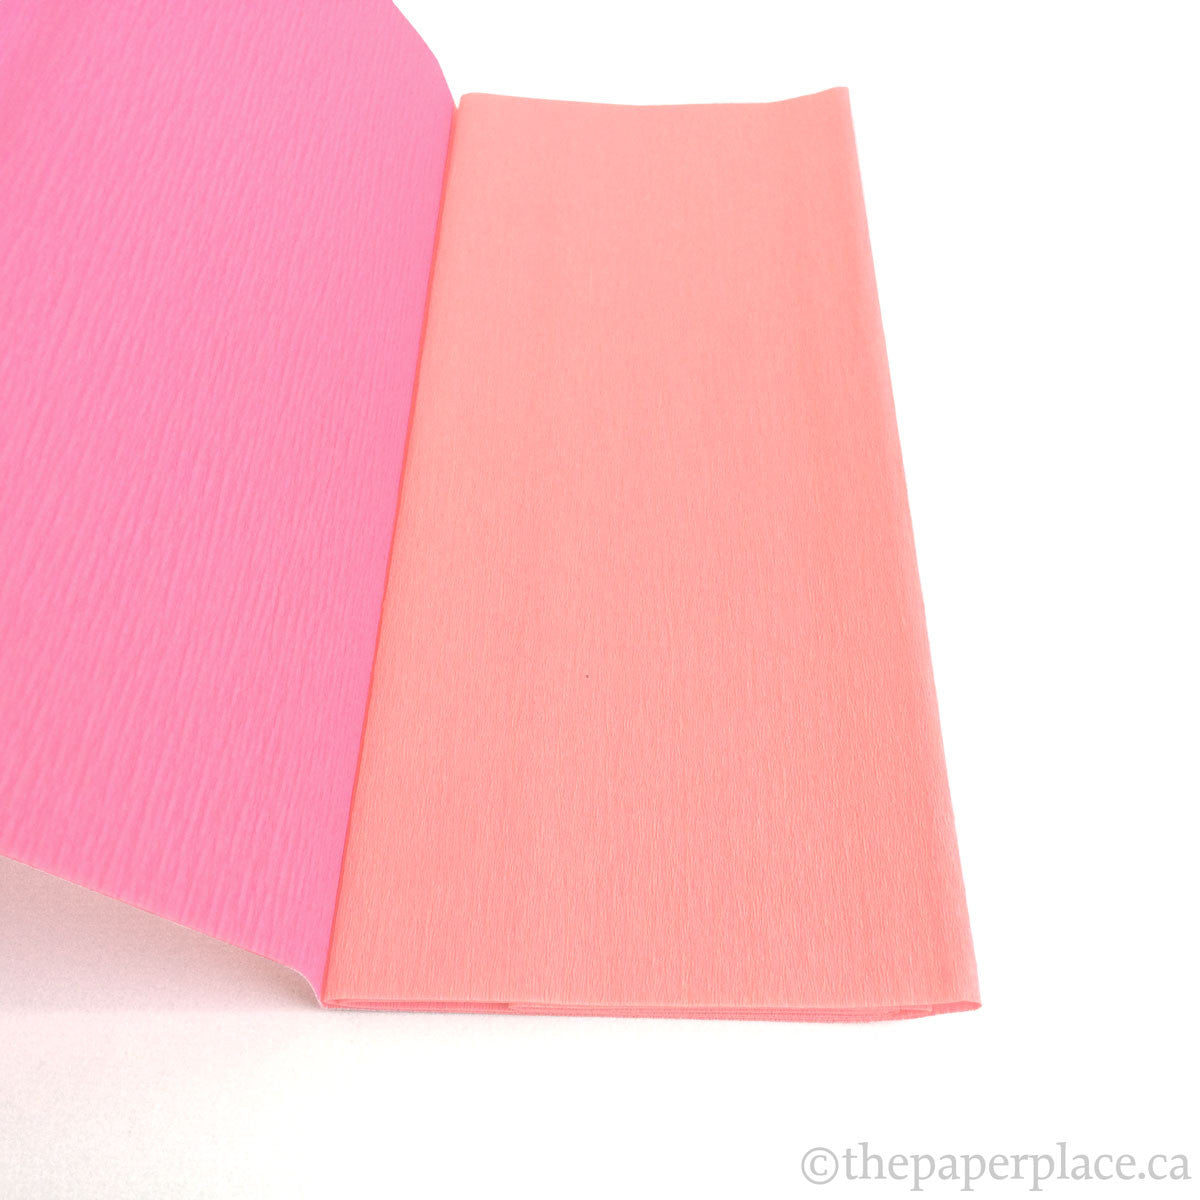 90g Double-Sided Crepe - Light Rose/Pink